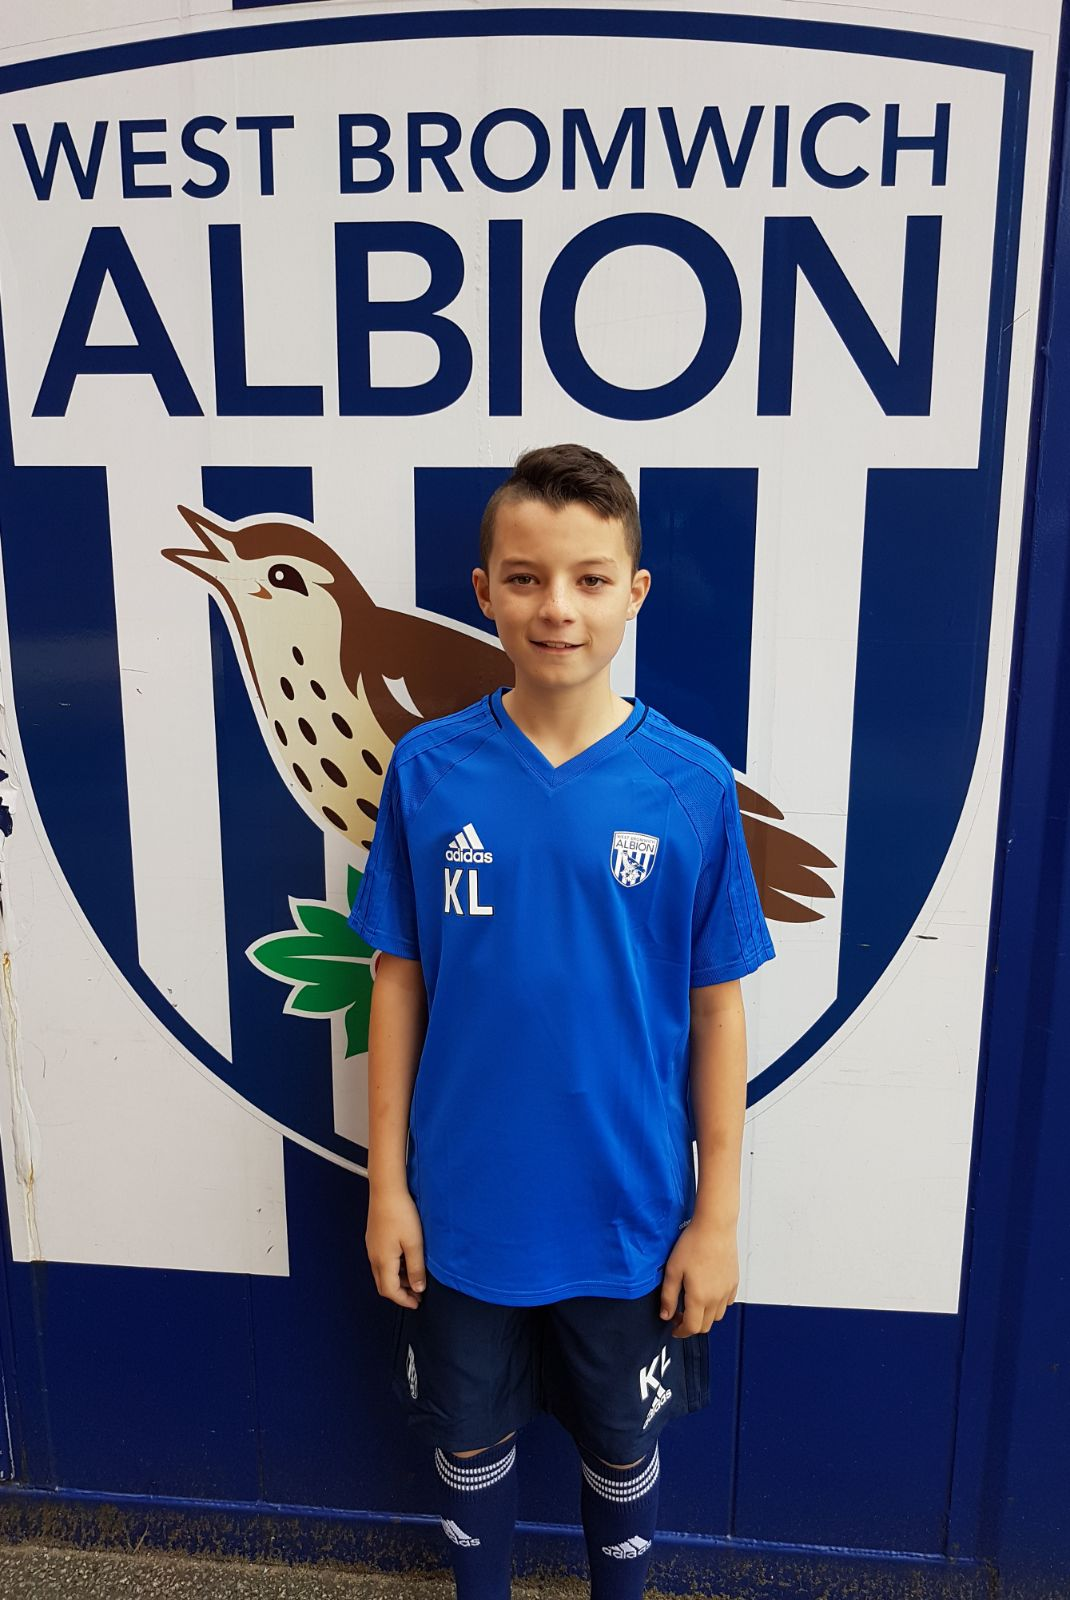 KYLE LANG - AGE: 11CLUB: WEST BROMWICH ALBION FCPOSITION: CENTRAL DEFENDERSTARTED IPDA: 7TH NOVEMBER 2016SIGNED FOR ACADEMY: 26TH SEPTEMBER 2017